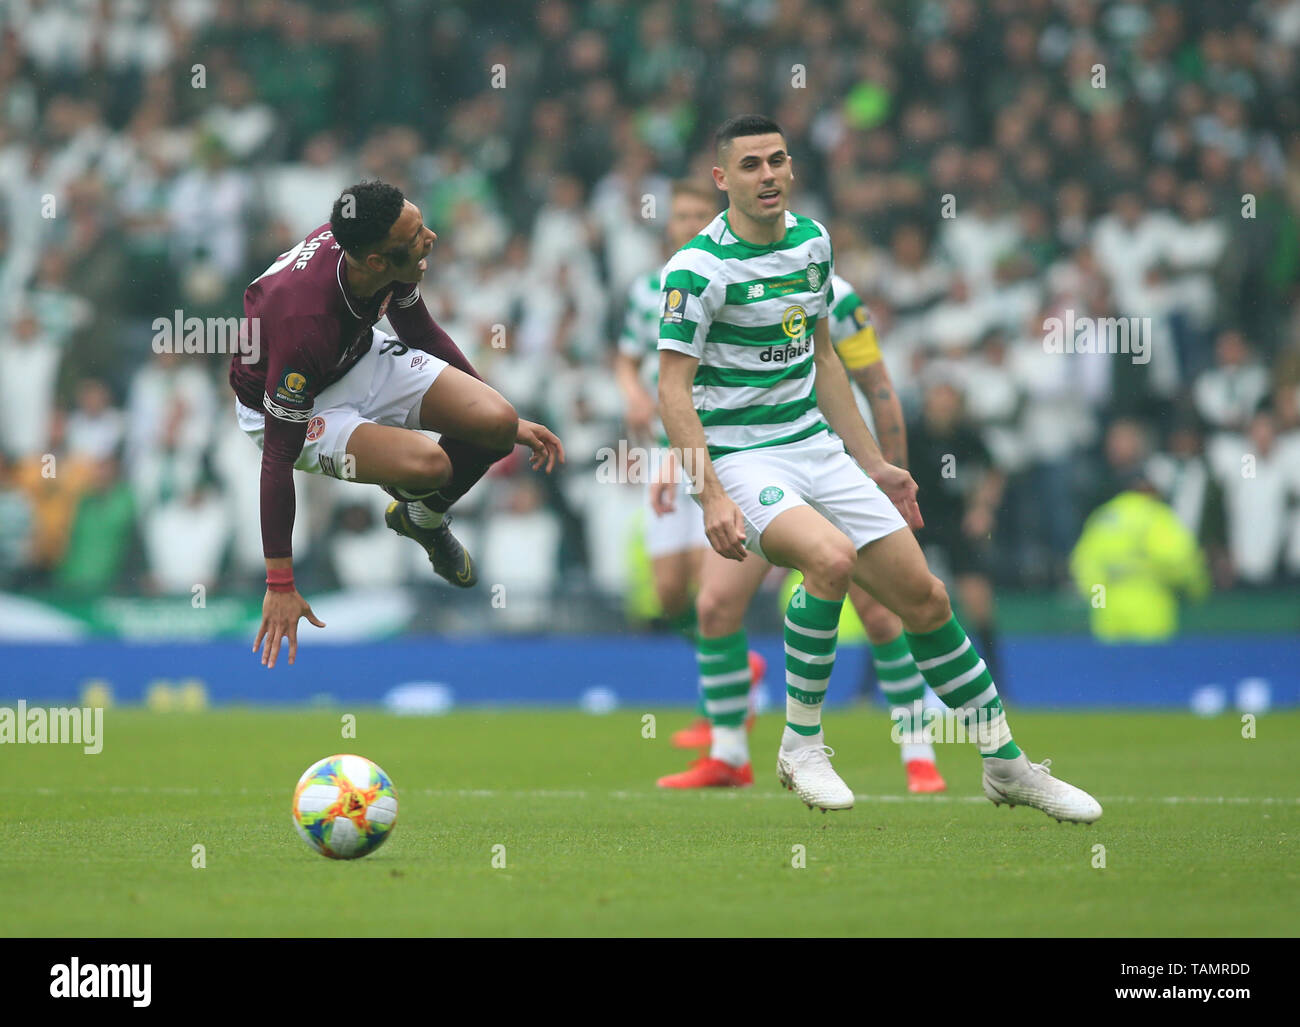 25th May 2019, Hampden Park, Glasgow, Scotland; Scottish Football Cup Final, Heart of Midlothian versus Celtic; Tom Rogic of Celtic tackles Sean Clare of Heart of Midlothian - Stock Image